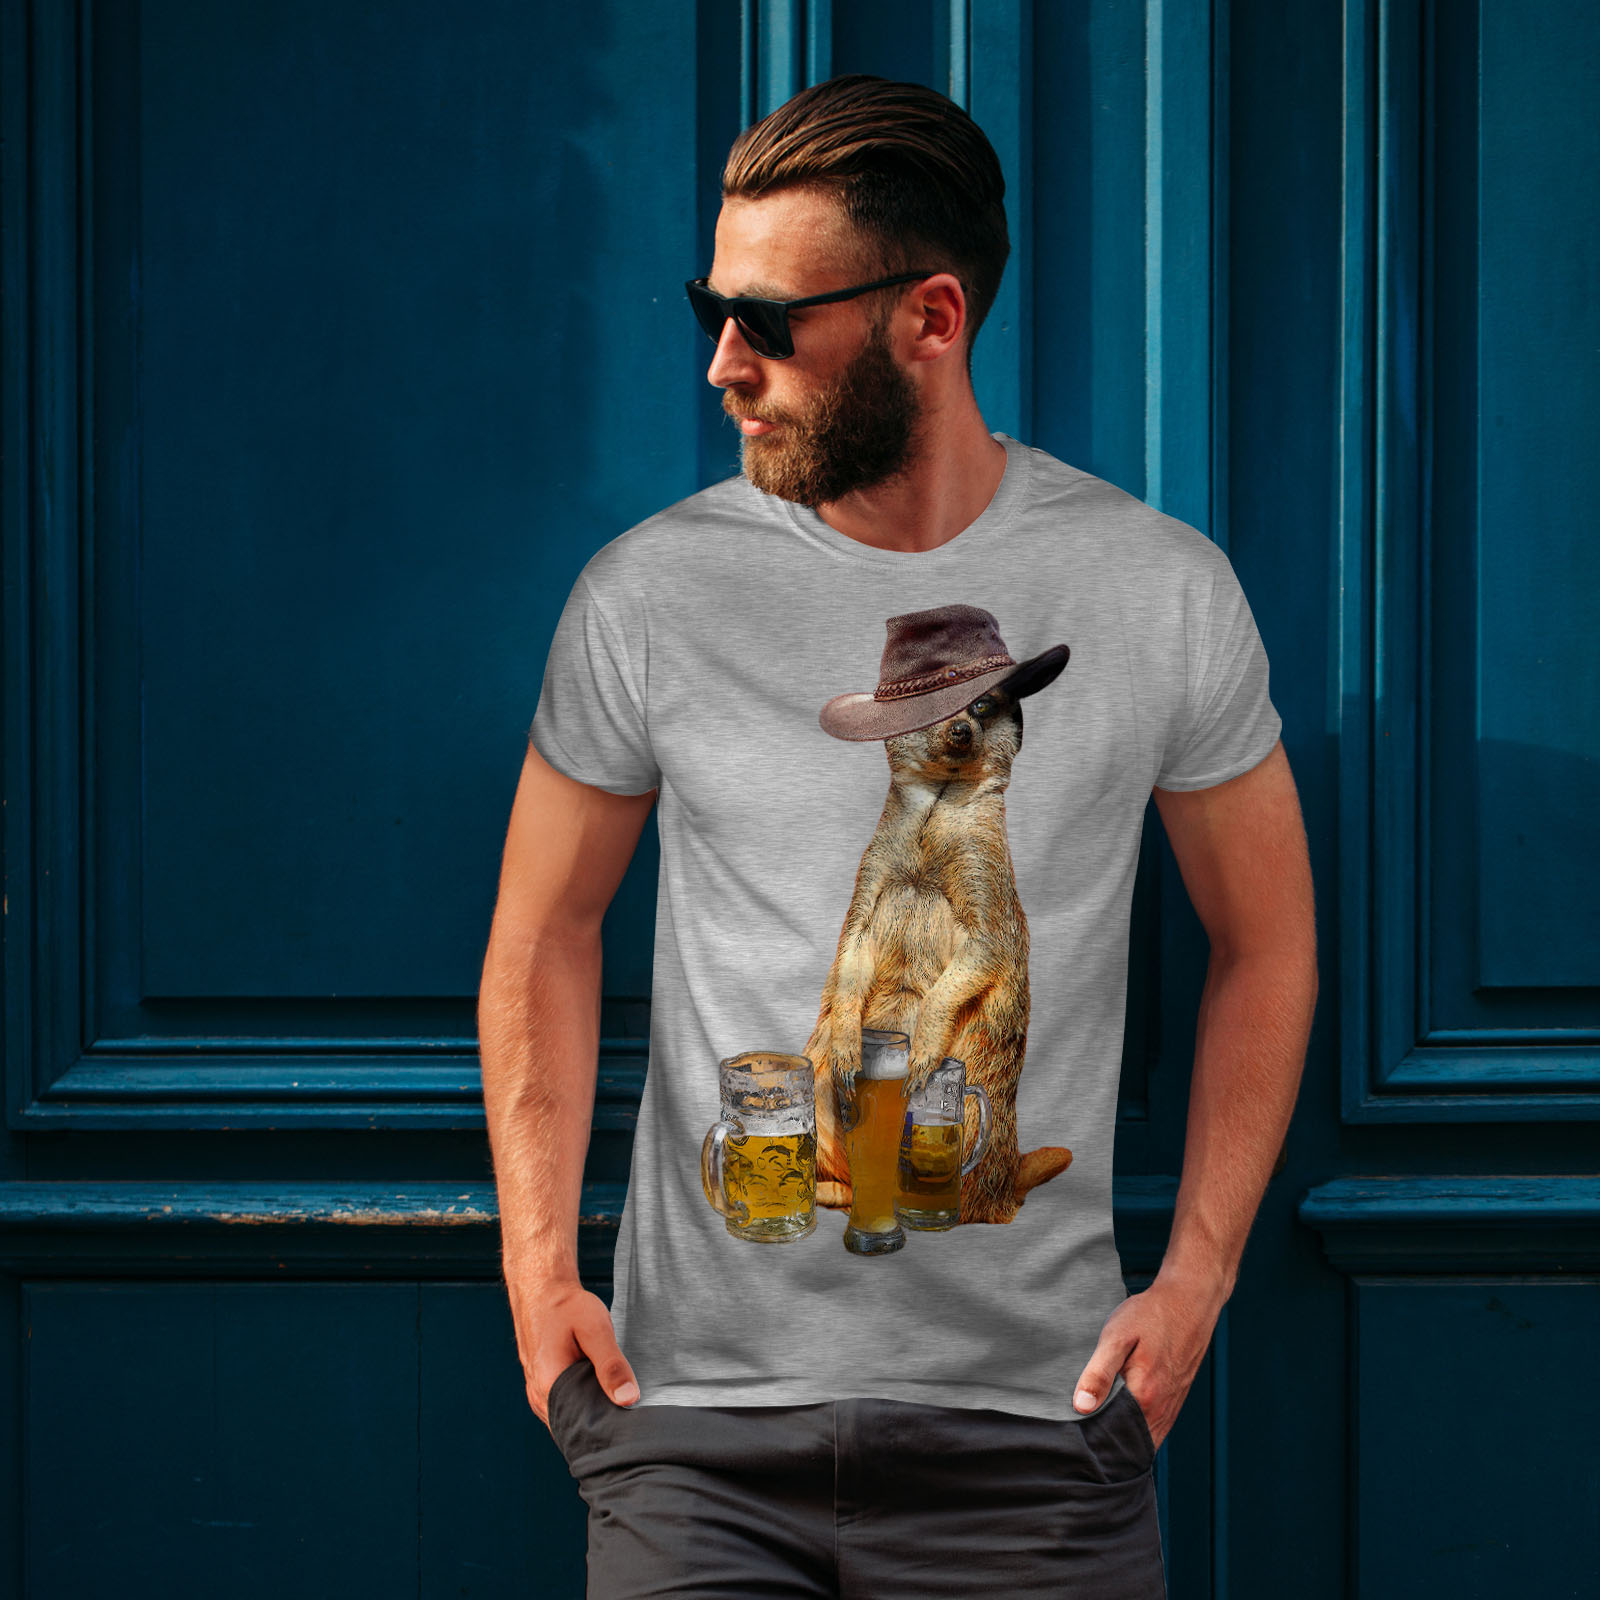 Wellcoda-Drunk-Animal-Beer-Mens-T-shirt-Funny-Graphic-Design-Printed-Tee thumbnail 16